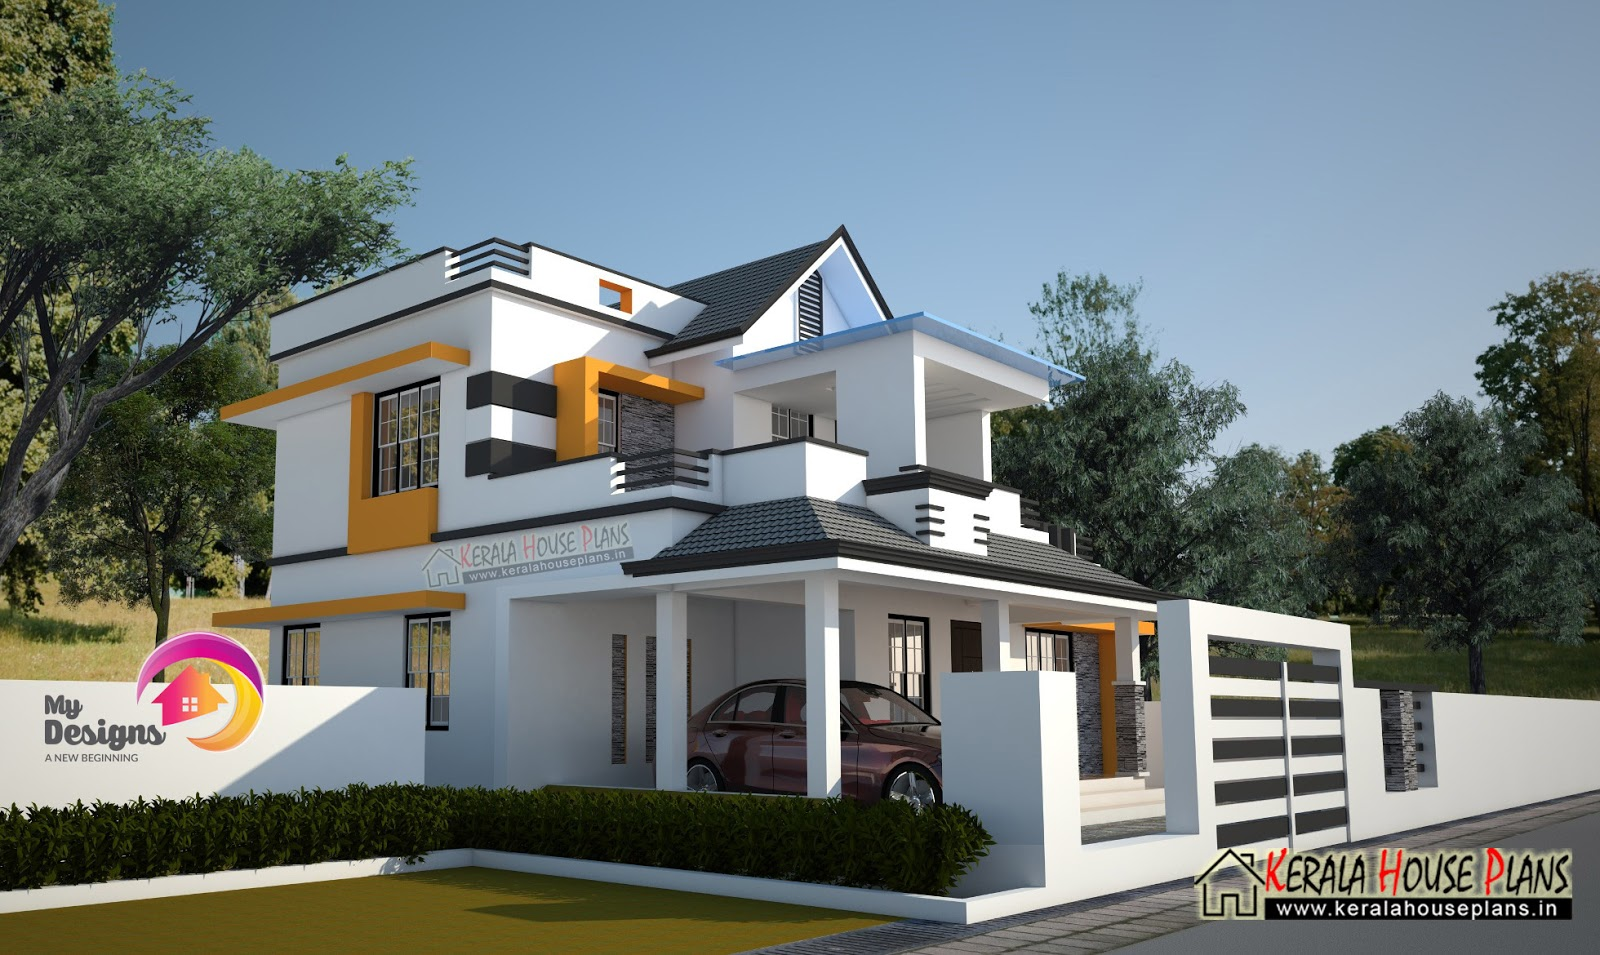 3 bedroom 2 story house design kerala house plans for 2 bedroom house plans in kerala